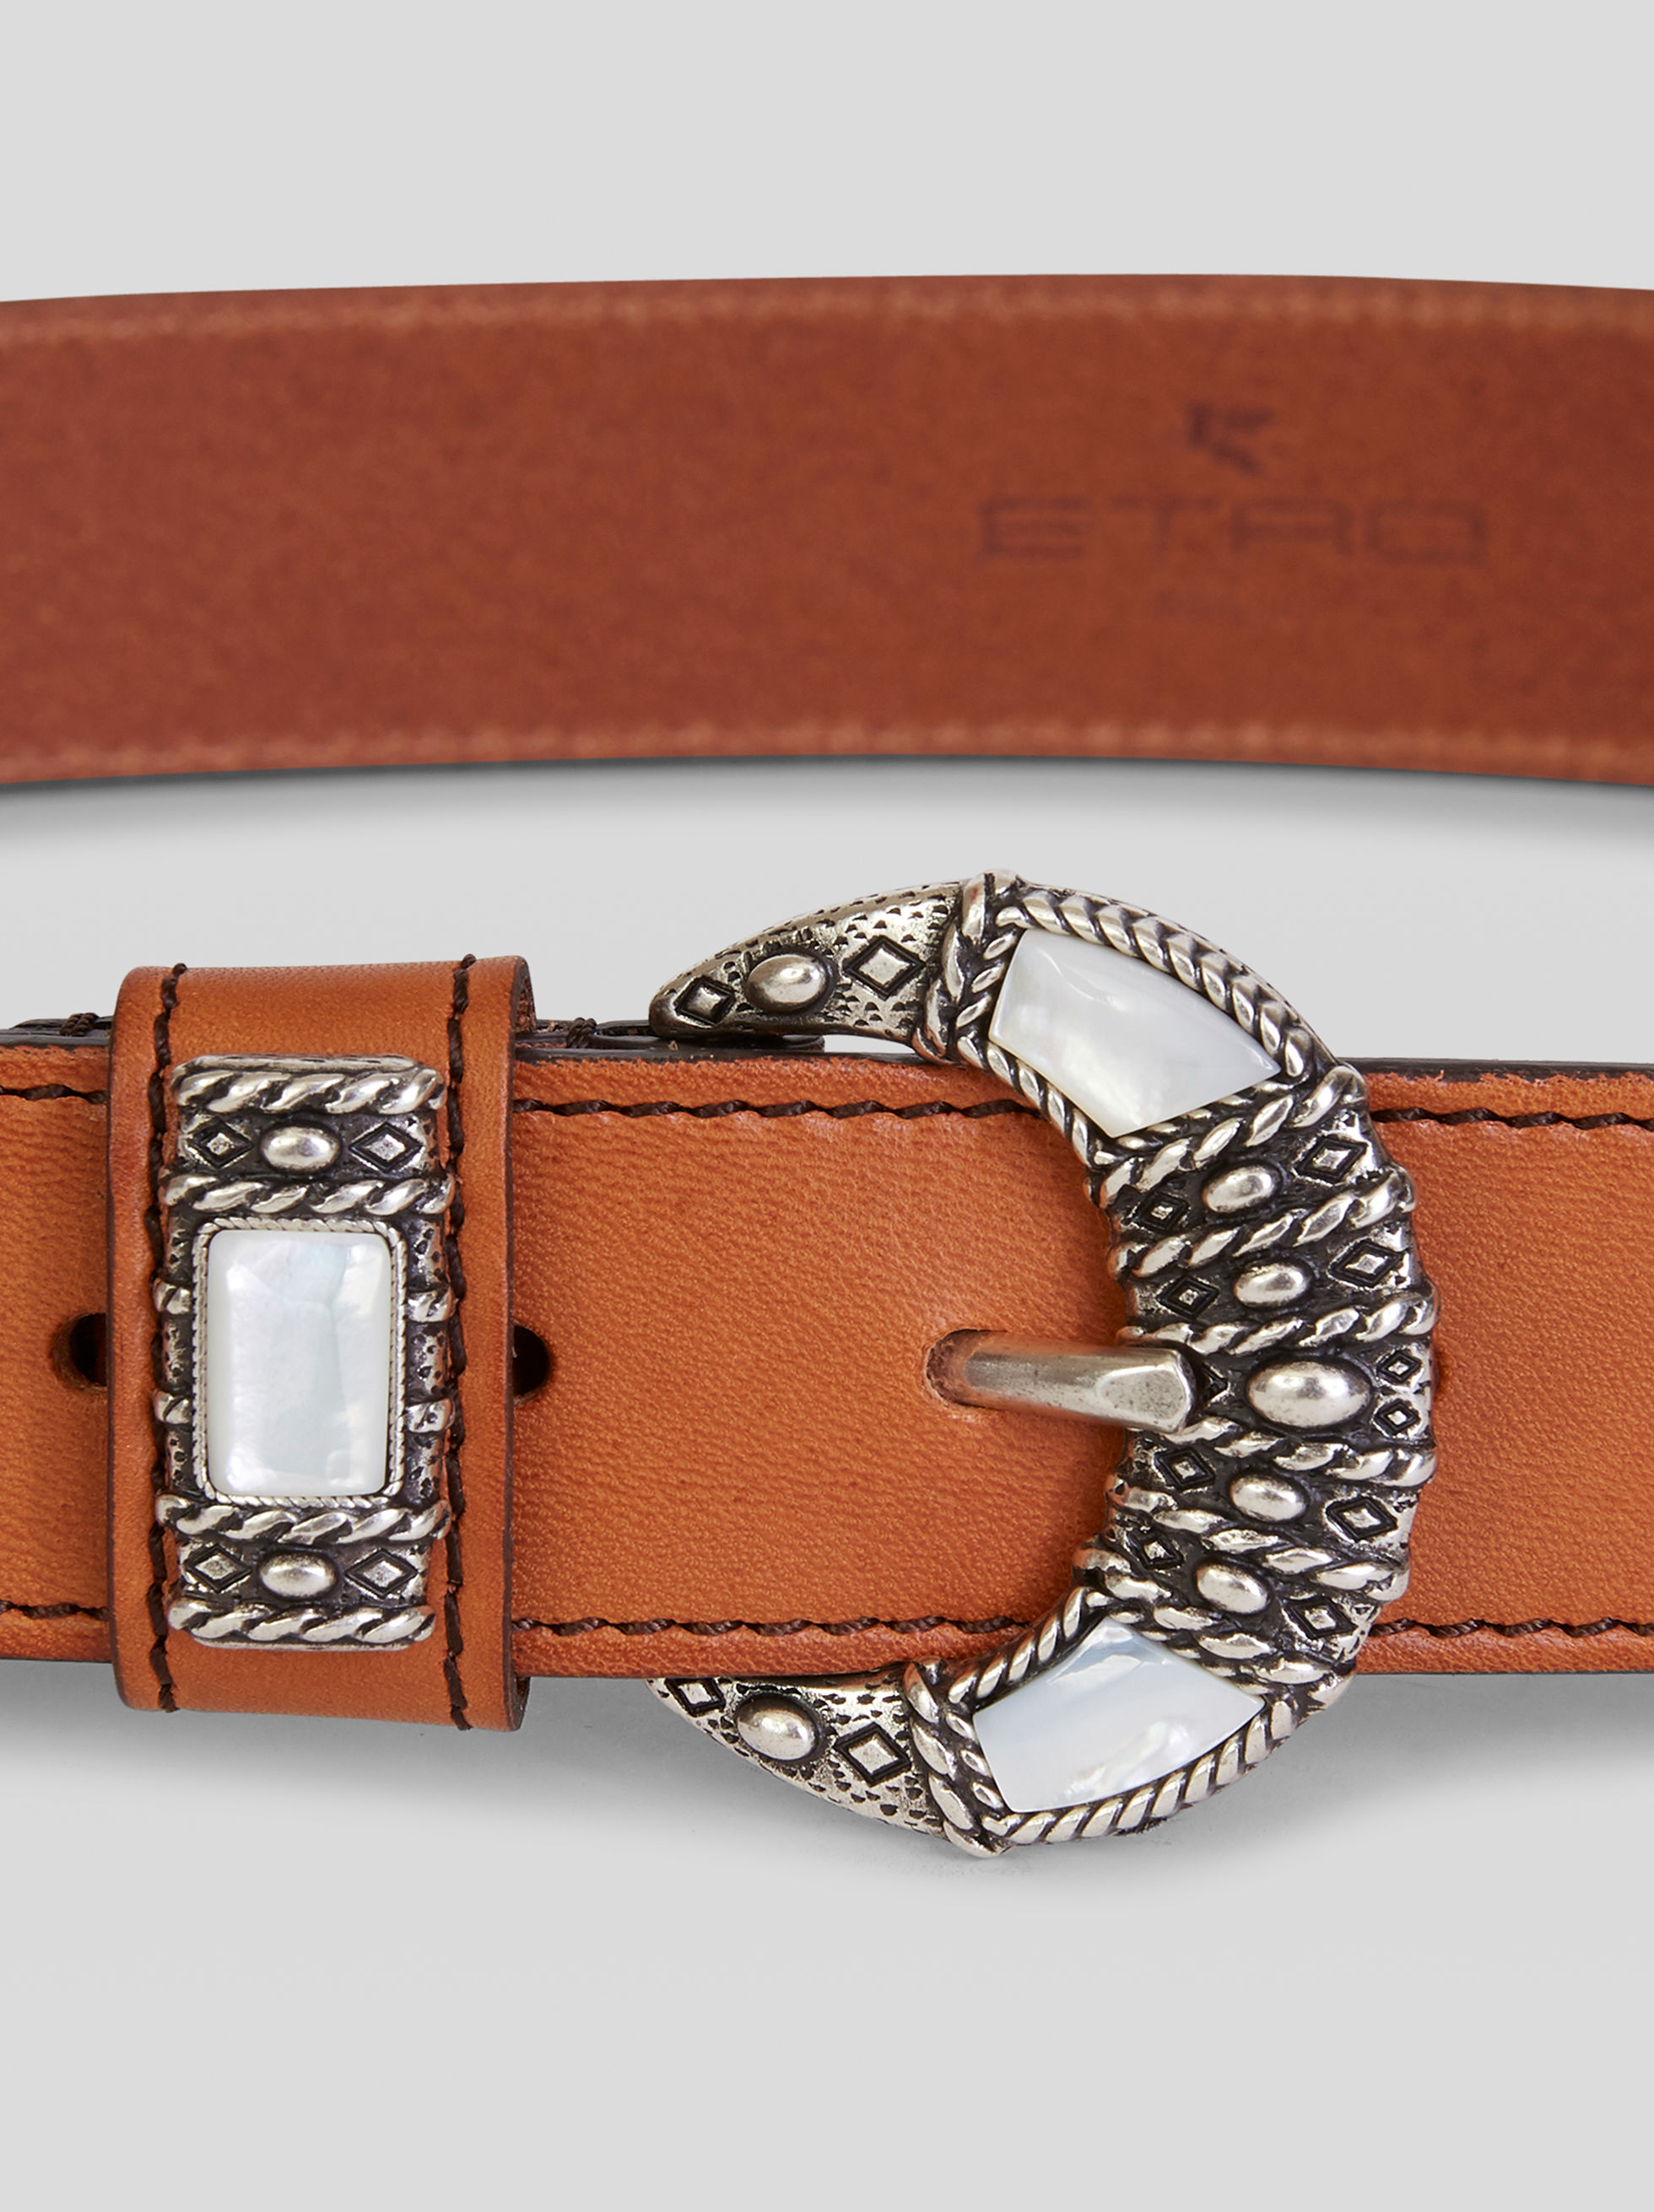 LEATHER BELT WITH MOTHER-OF-PEARL